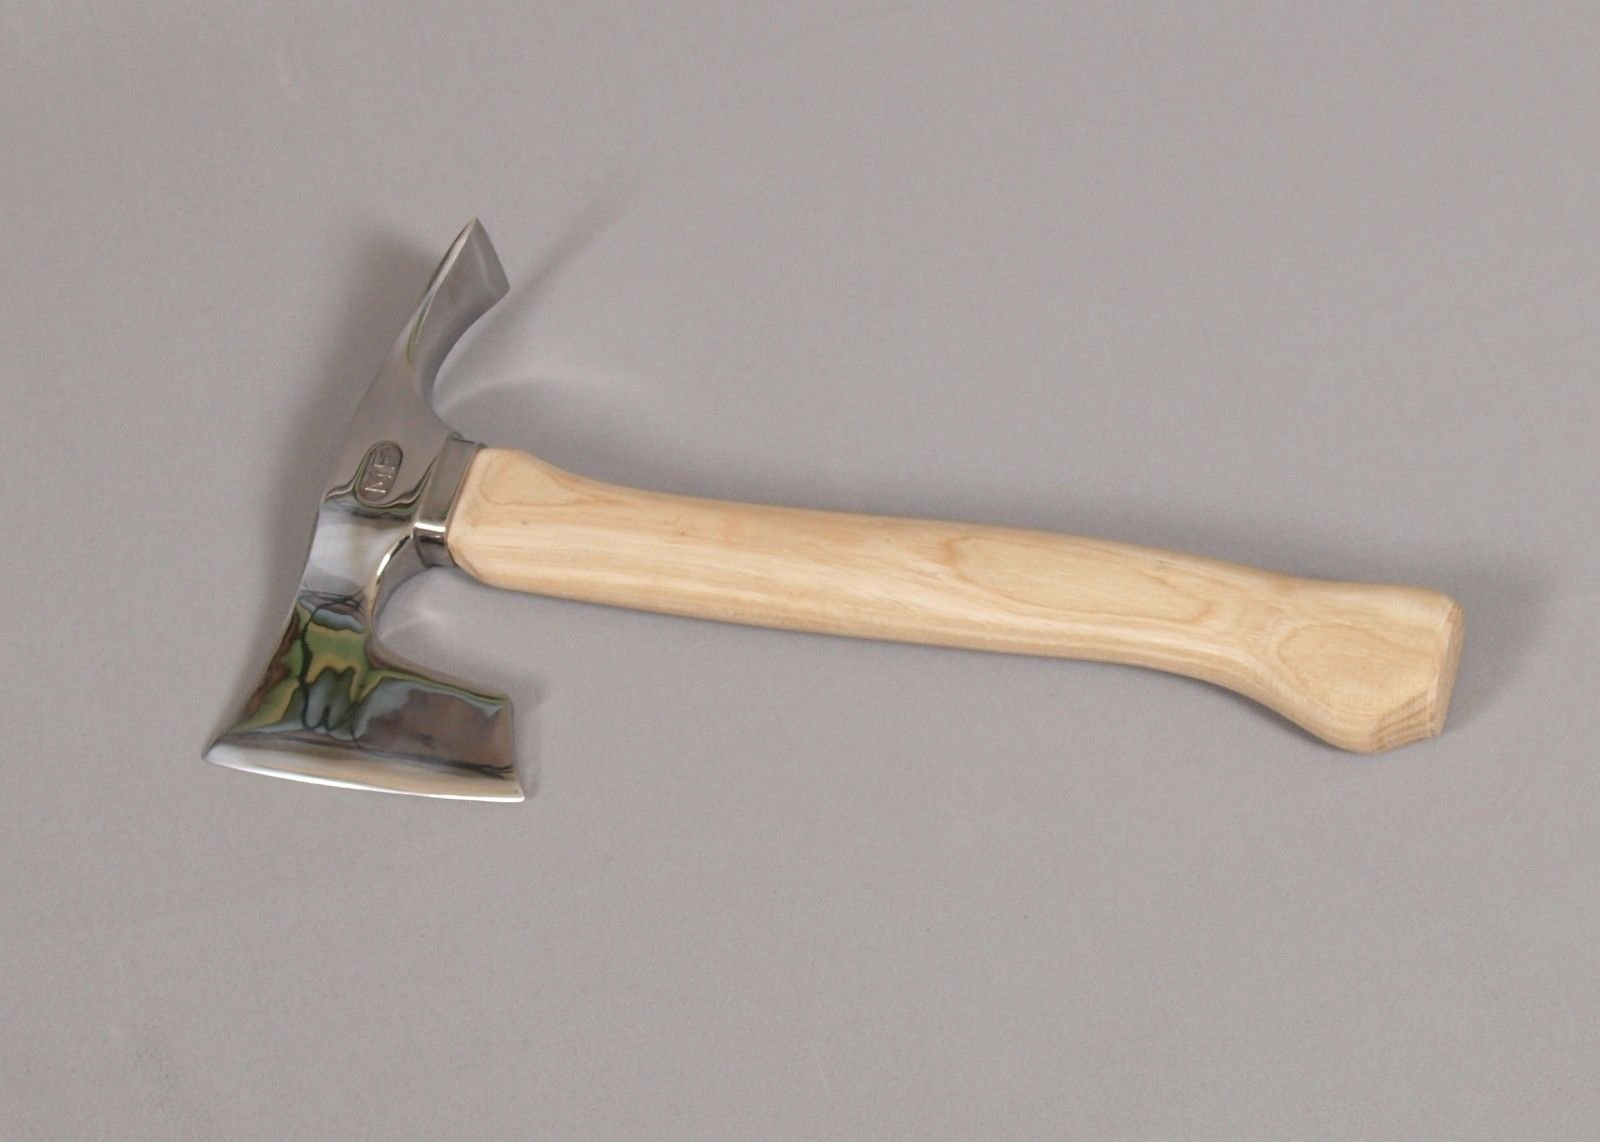 Stainless Steel Elegant Small Bearded Hatchet / Axe Combined with Adze Blade by mapsyst (Image #6)